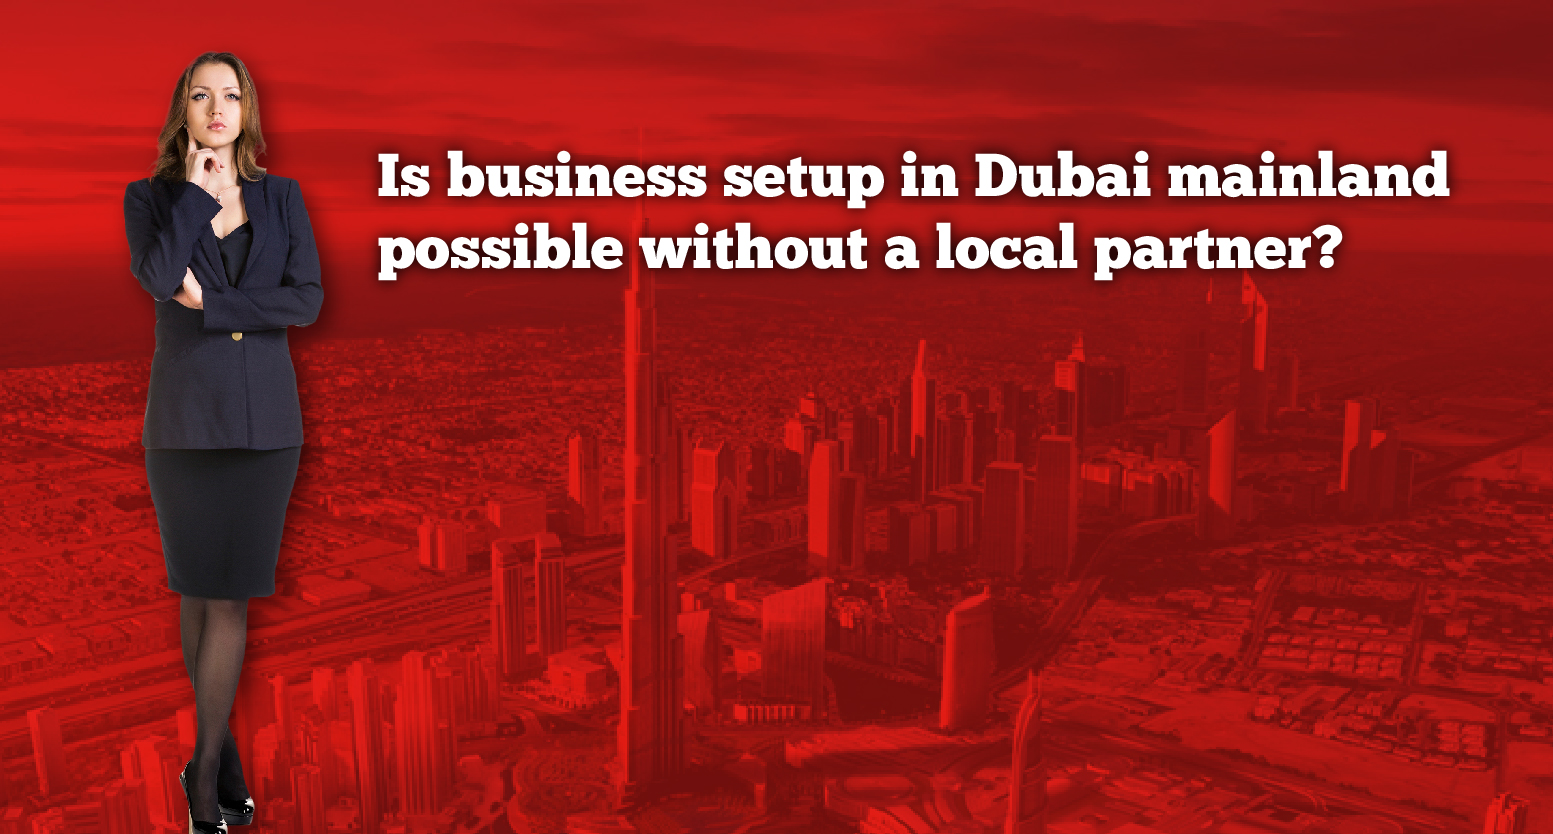 Is business setup in Dubai mainland possible without a local partner?